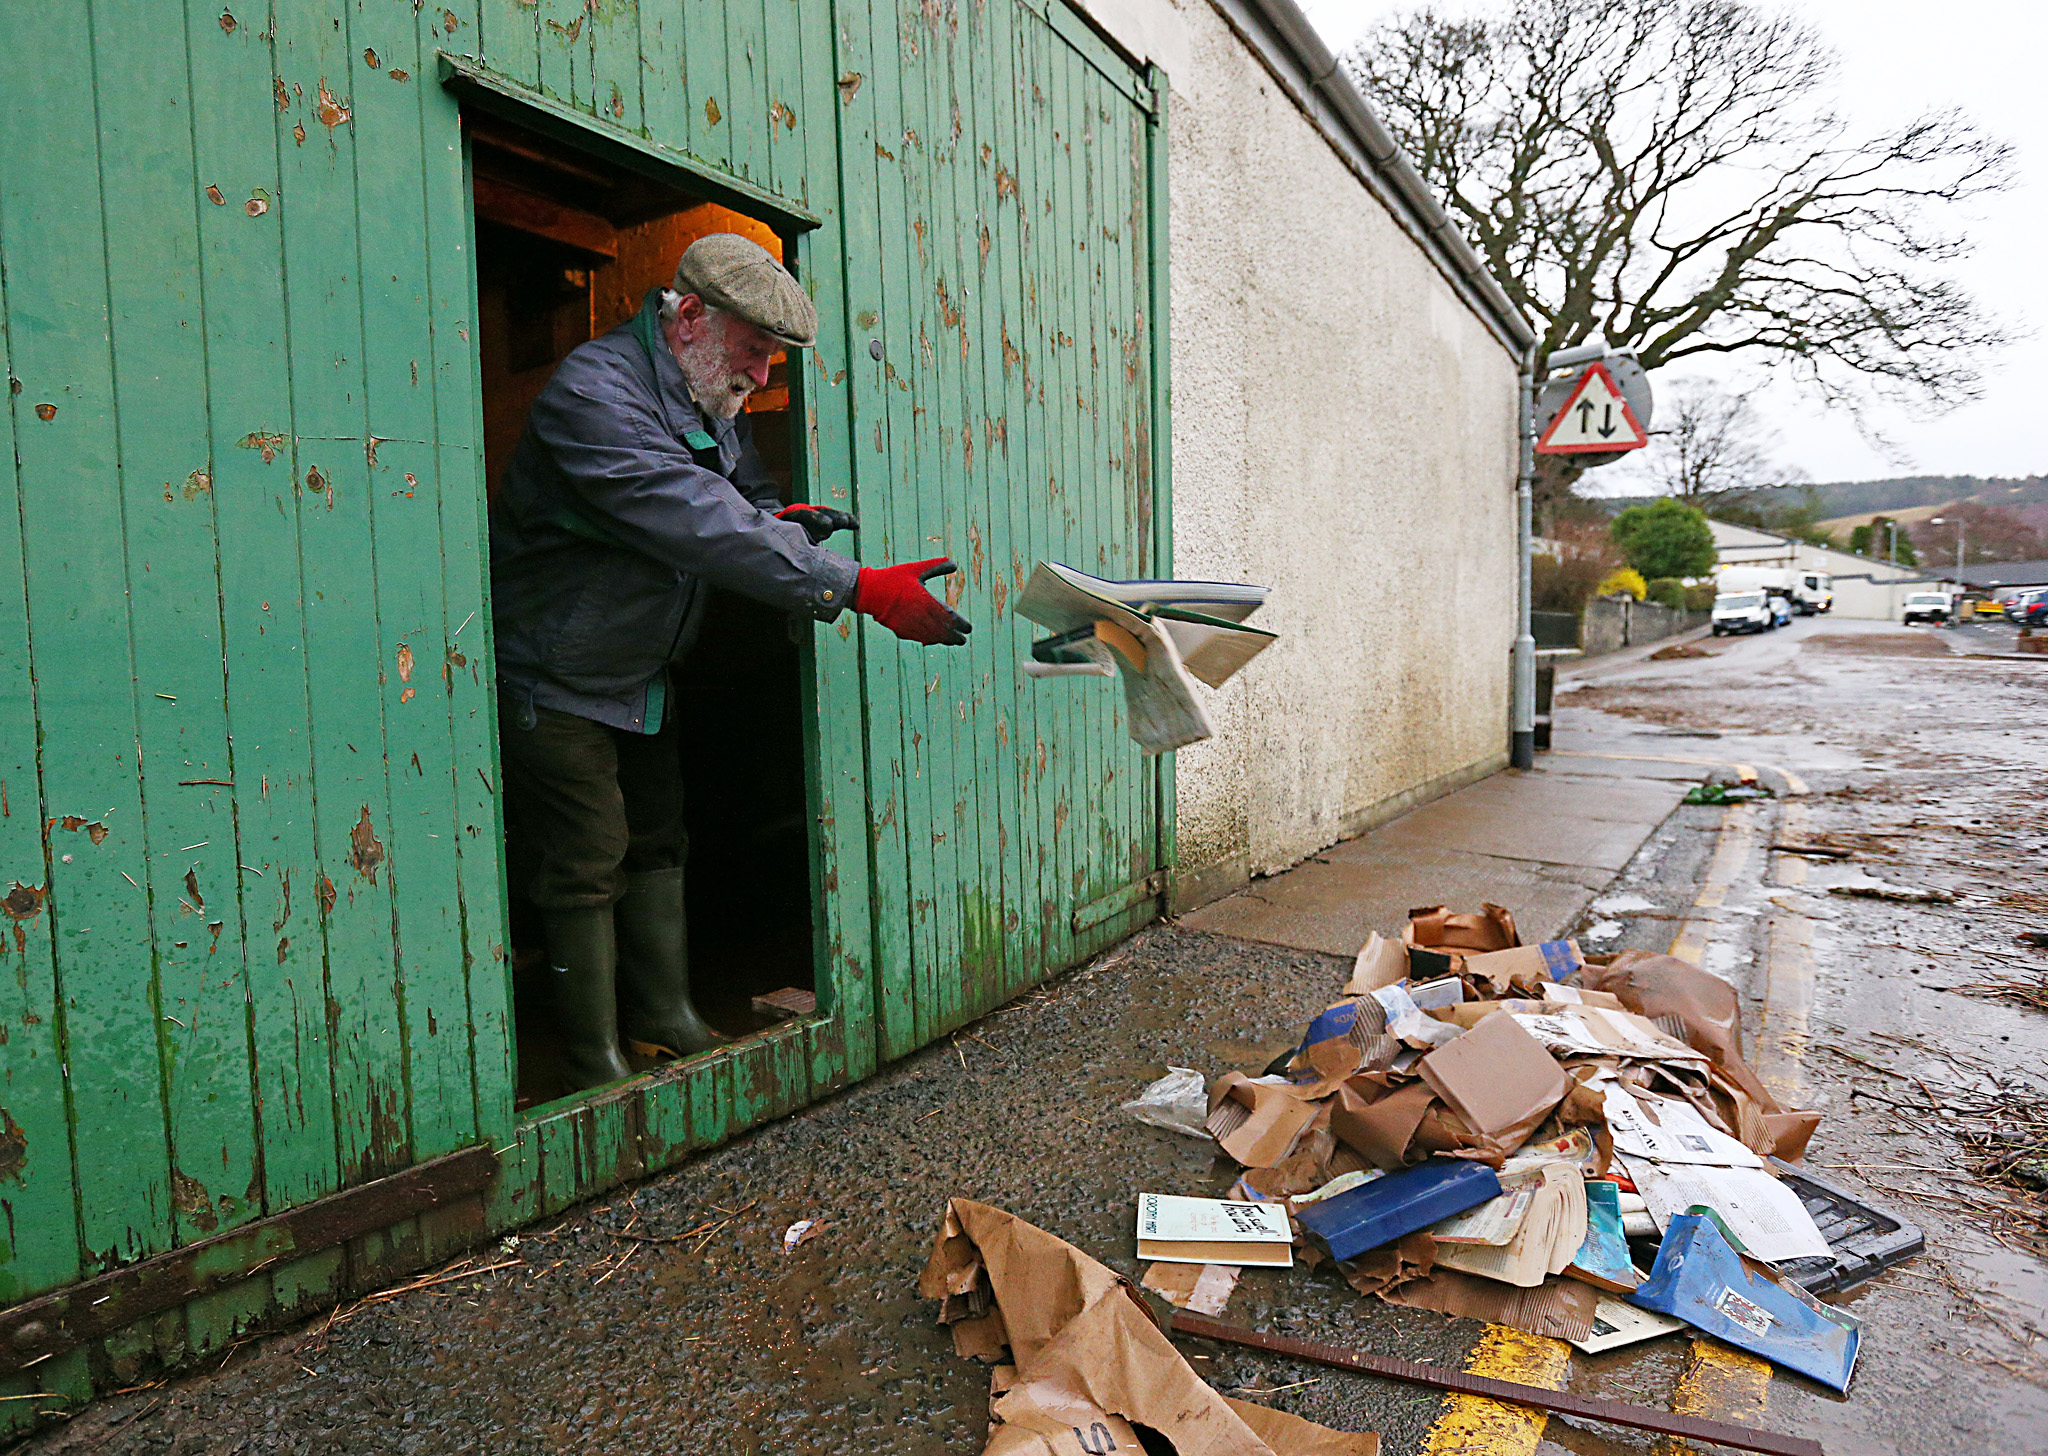 A local man clears out his lock up that was inundated by flood water after the river Tweed burst it's banks flooding the area on December 31, 2015 in Peebles, Scotland. Storm Frank is the latest winter storm to bring heavy rain fall and flooding to the north of England and Scotland, causing widespread disruption to transport and infrastructure.